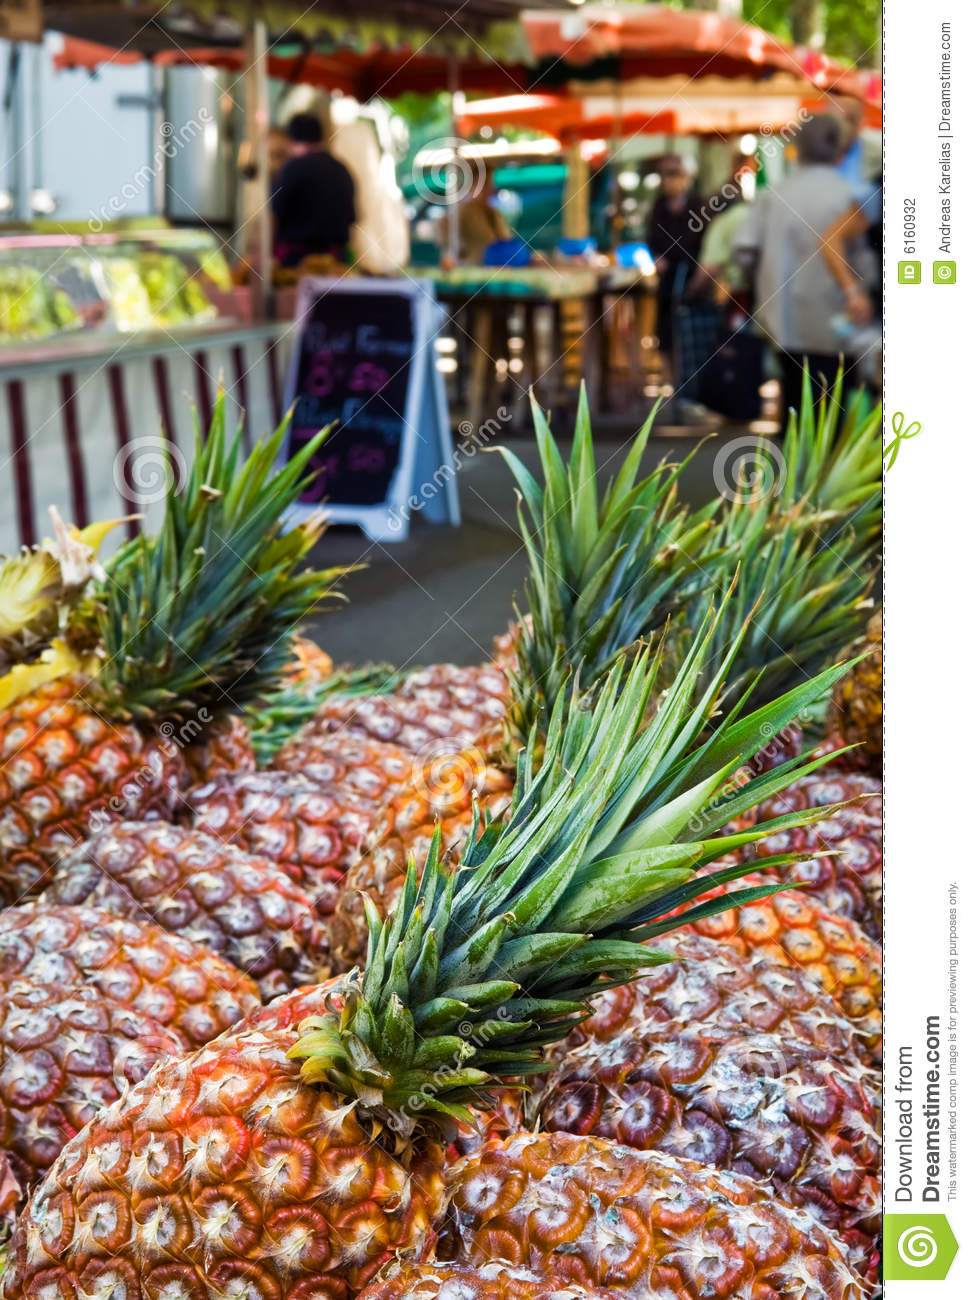 Outdoor food market stock photography image 6160932 for Outdoor food market